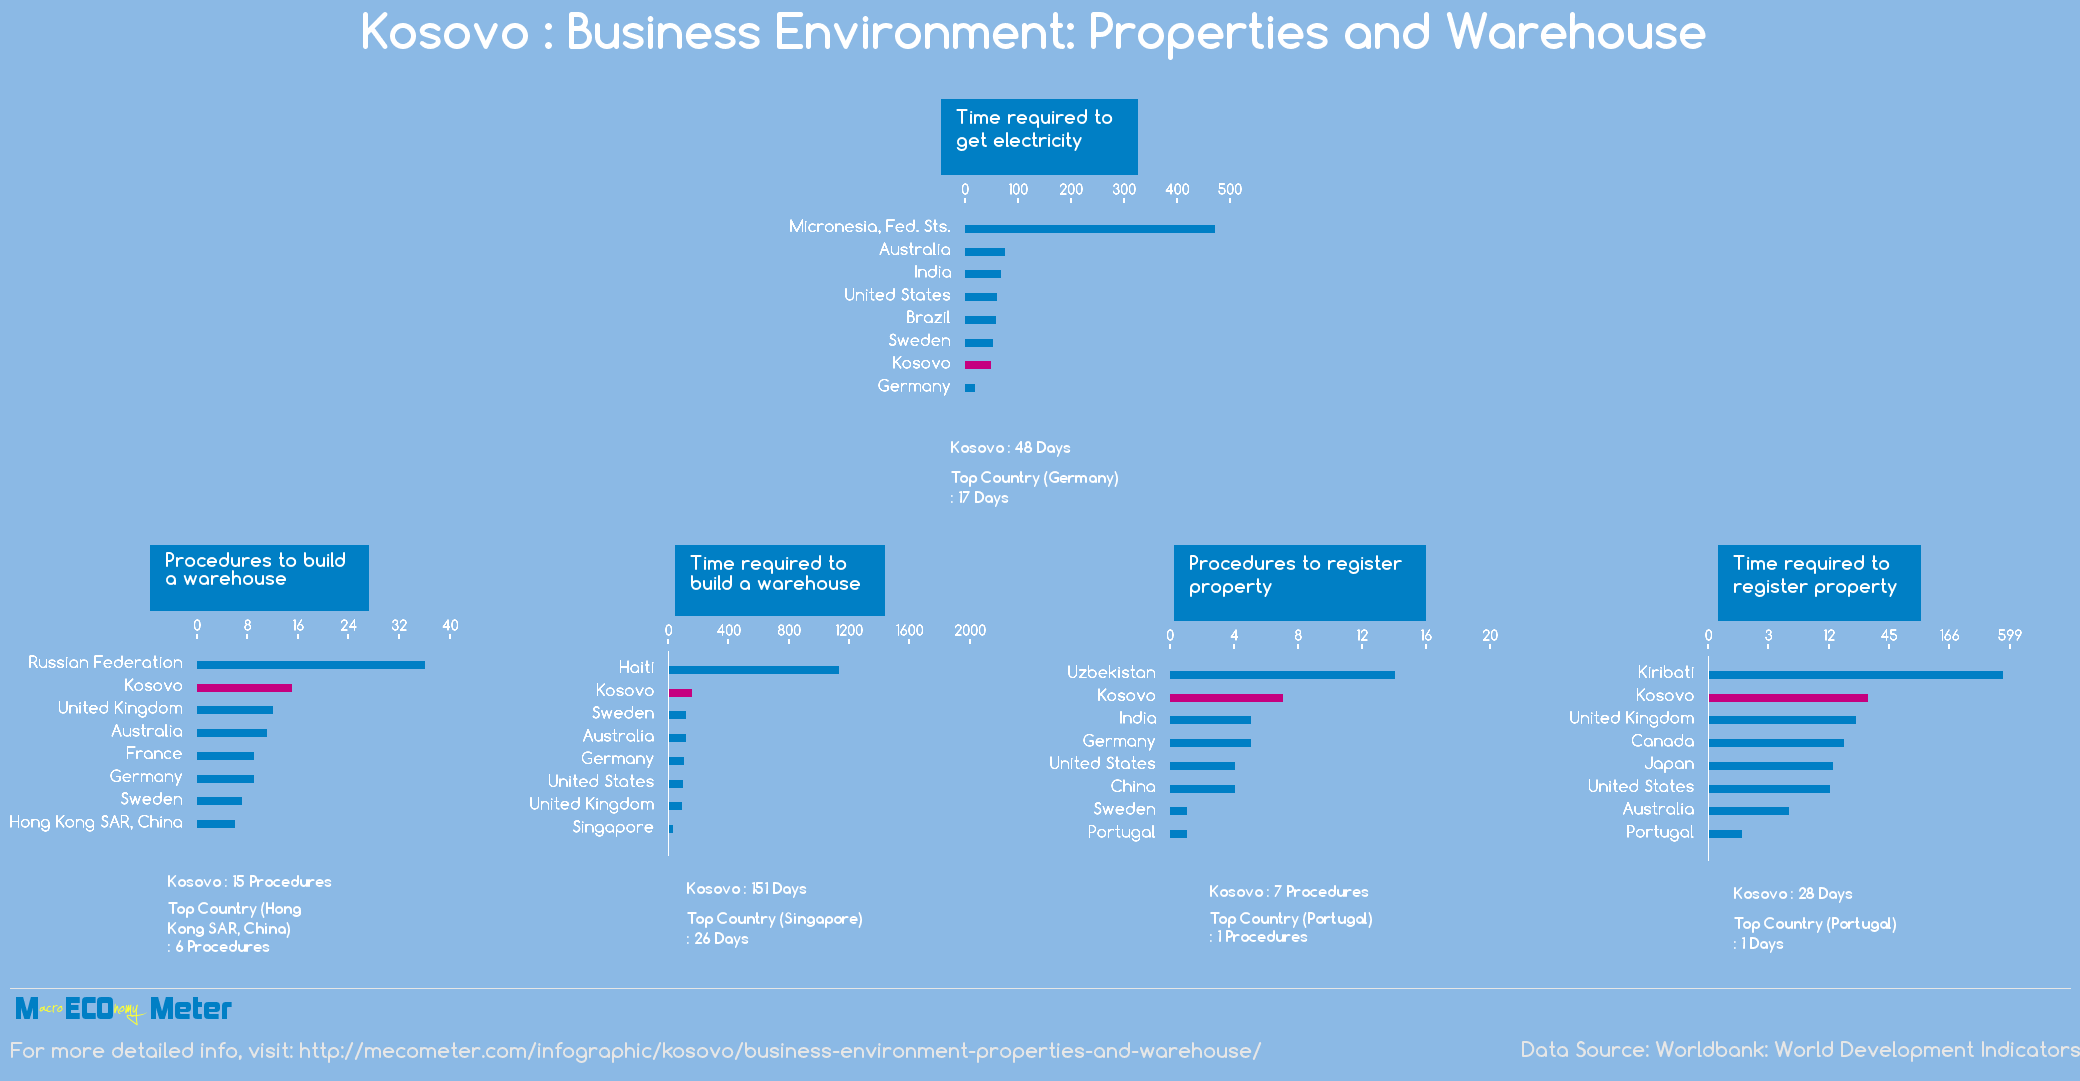 Kosovo : Business Environment: Properties and Warehouse